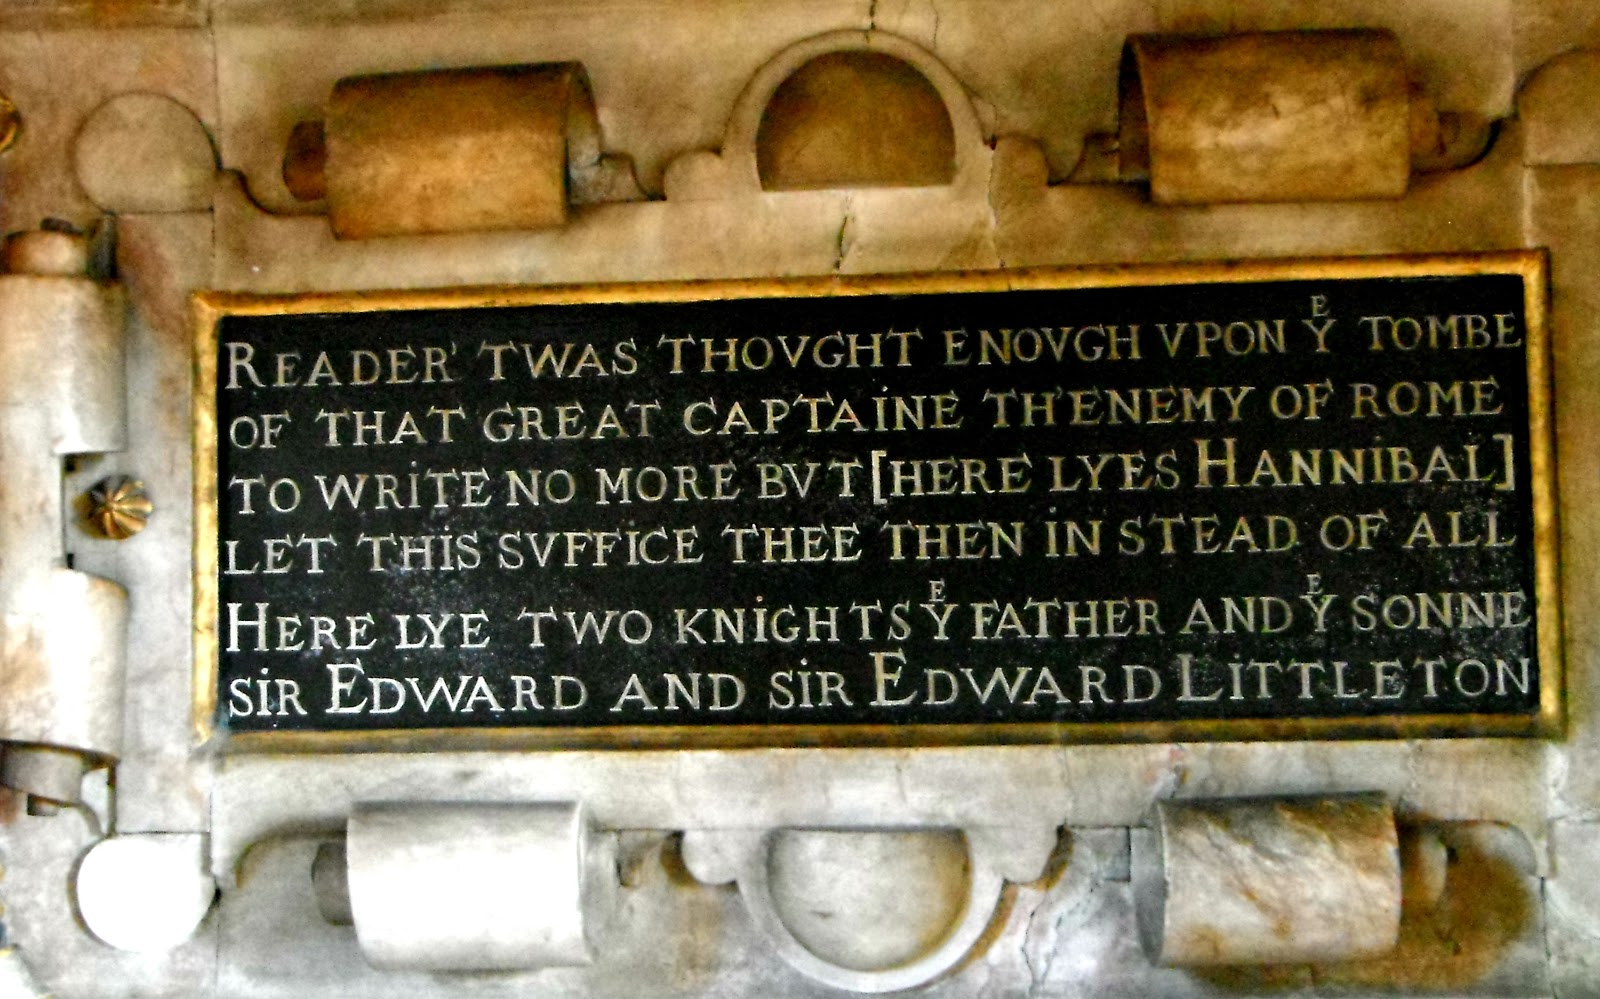 Epitaph on the Littleton tomb at Penkridge Church